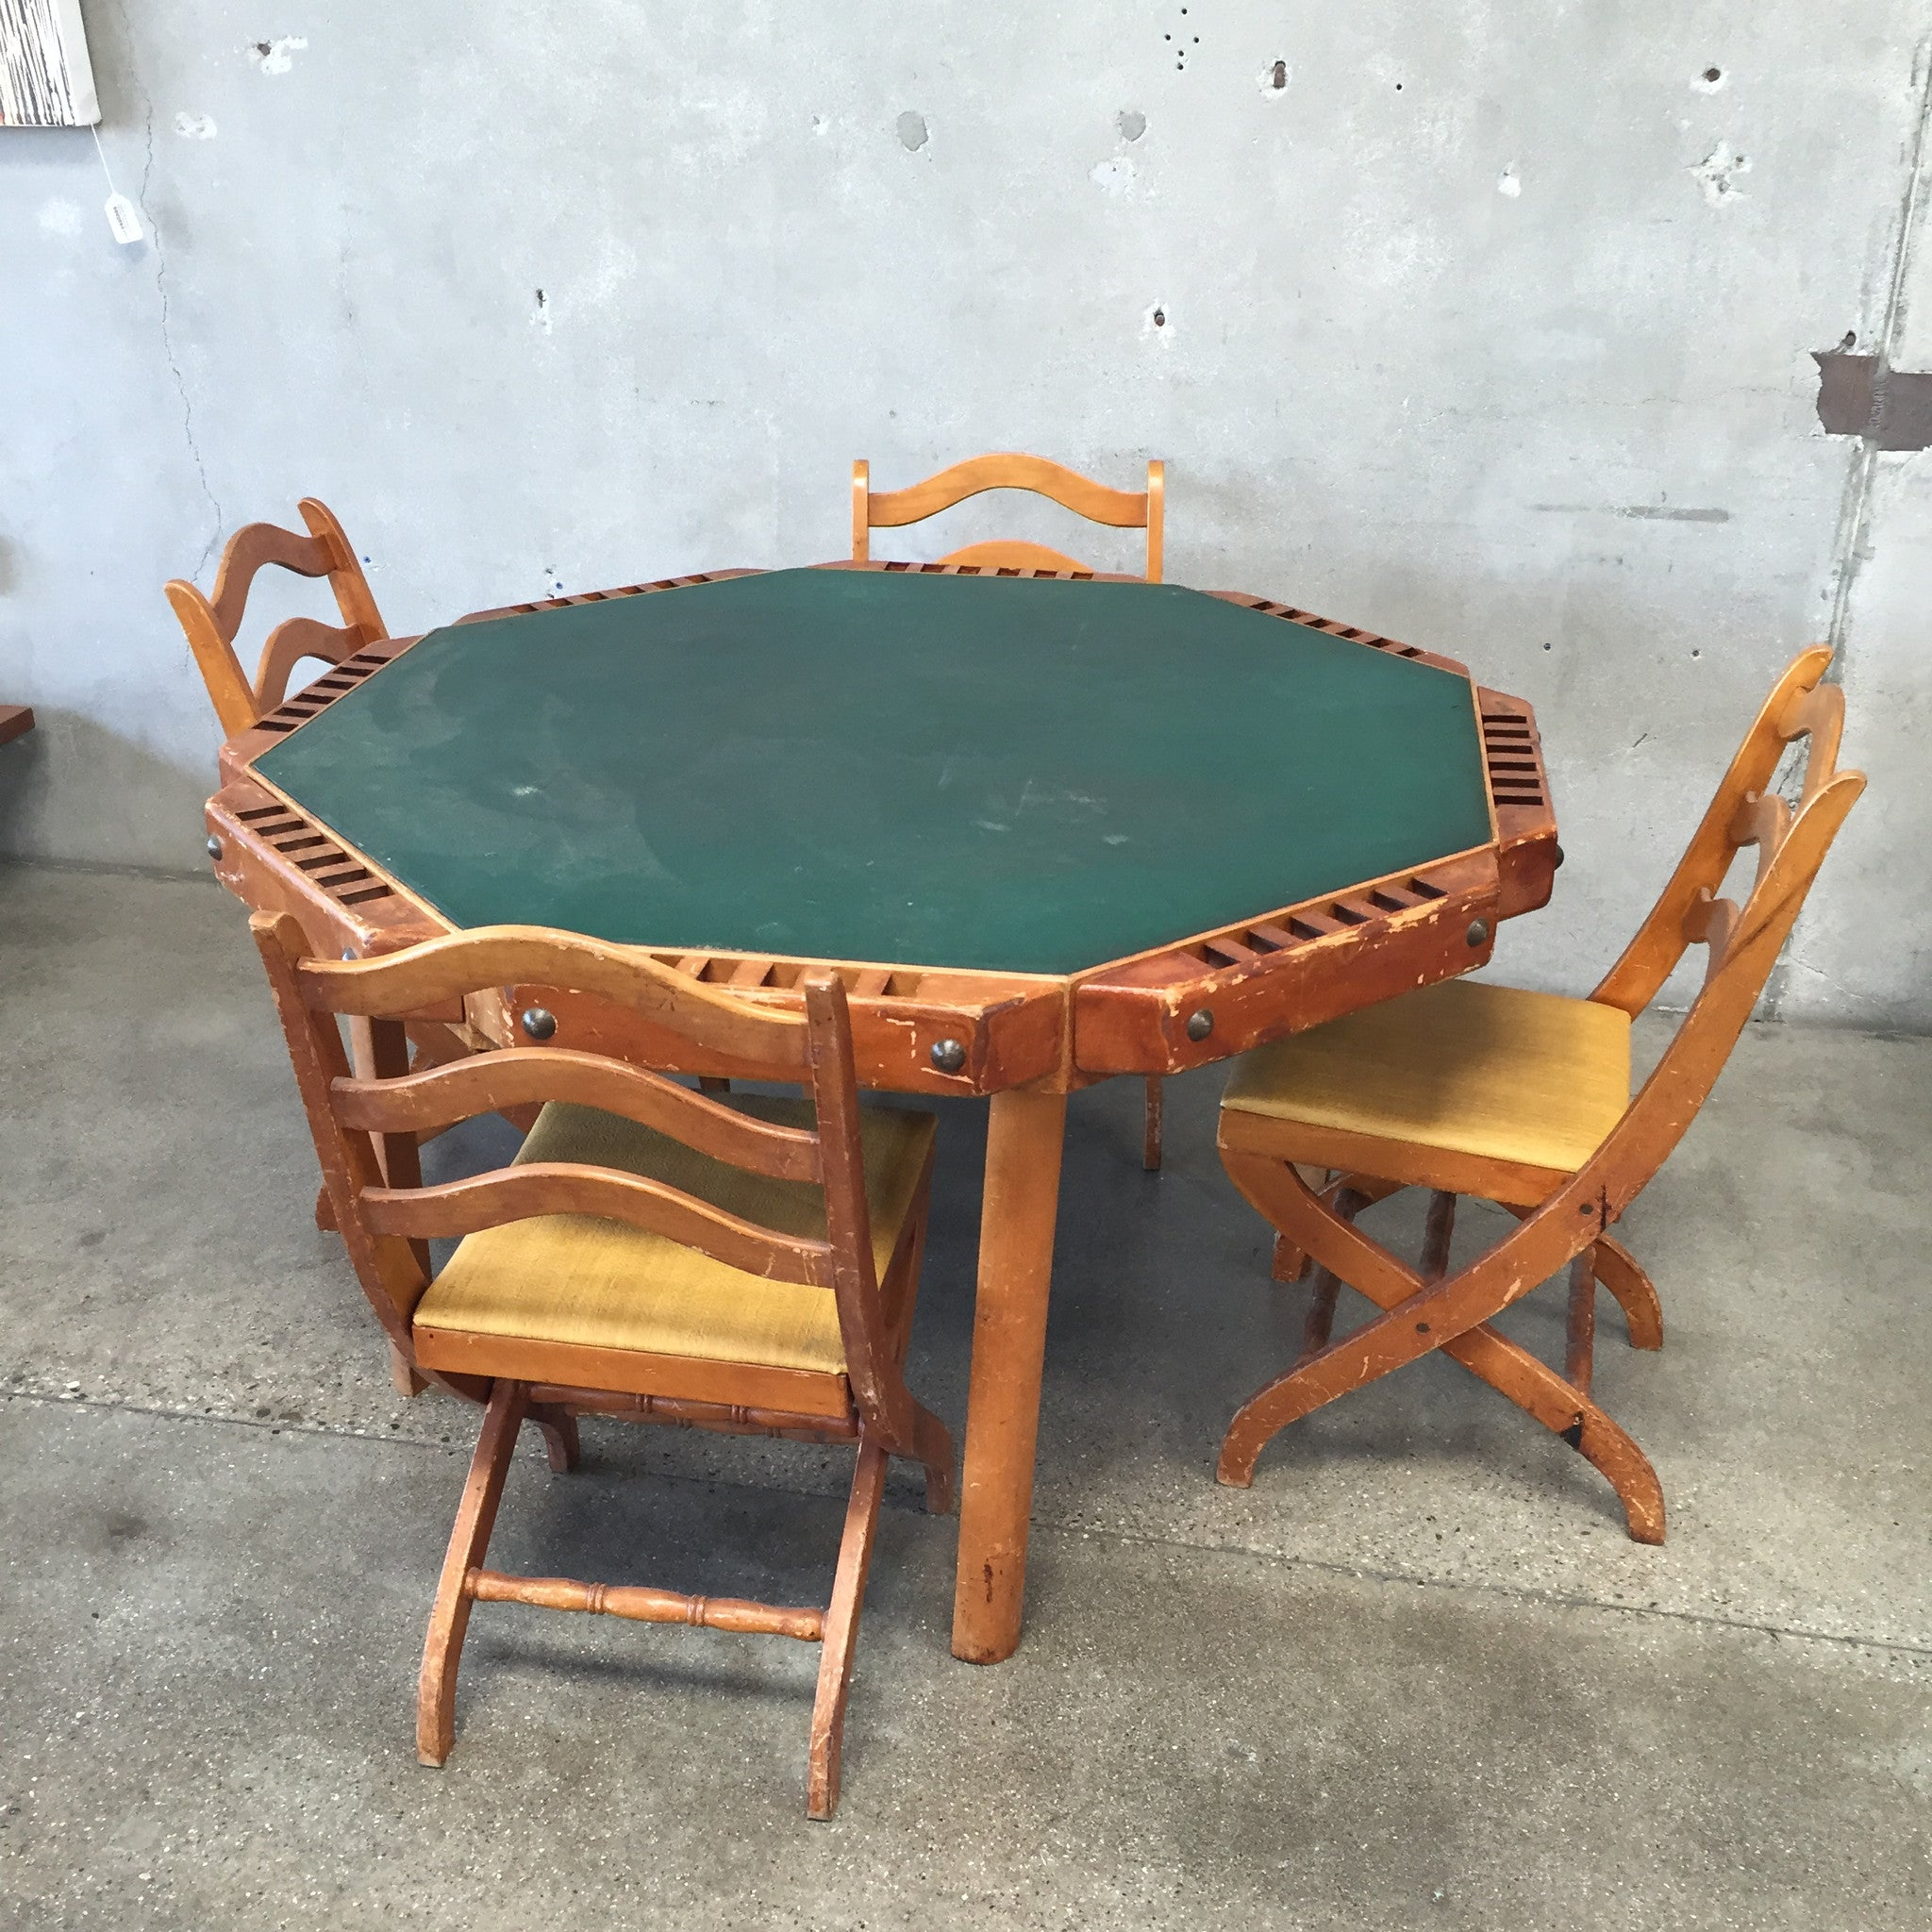 Vintage Poker Table with Folding Chairs – UrbanAmericana